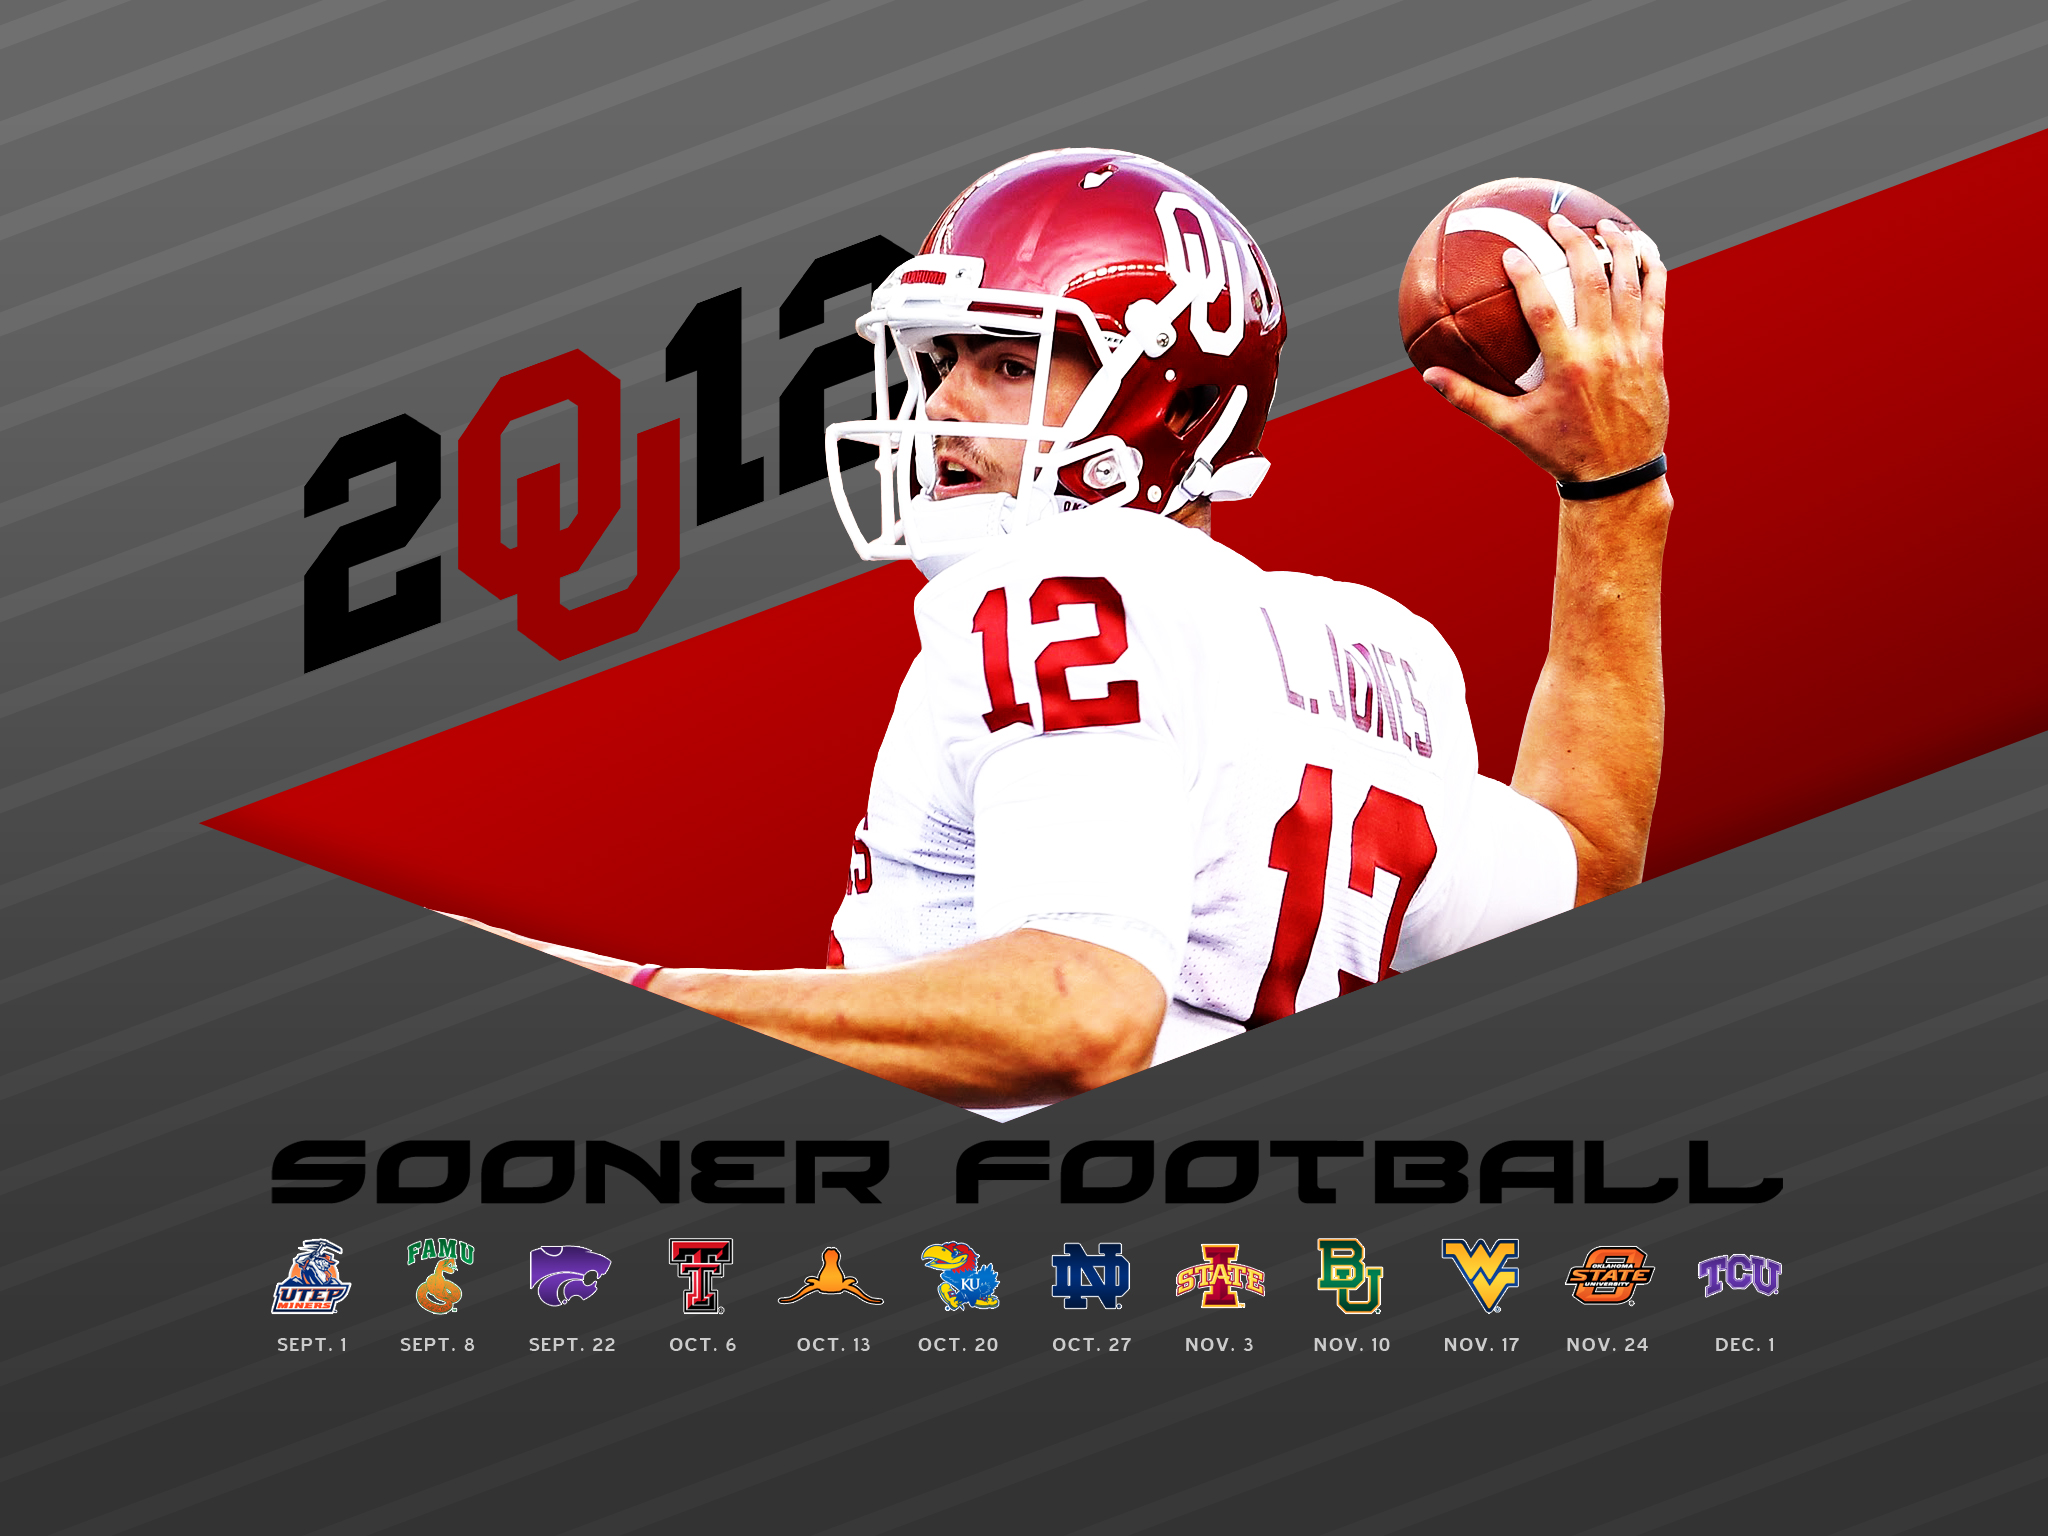 2012 OU Football Schedule Wallpaper for iPhone amp iPad 2048x1536